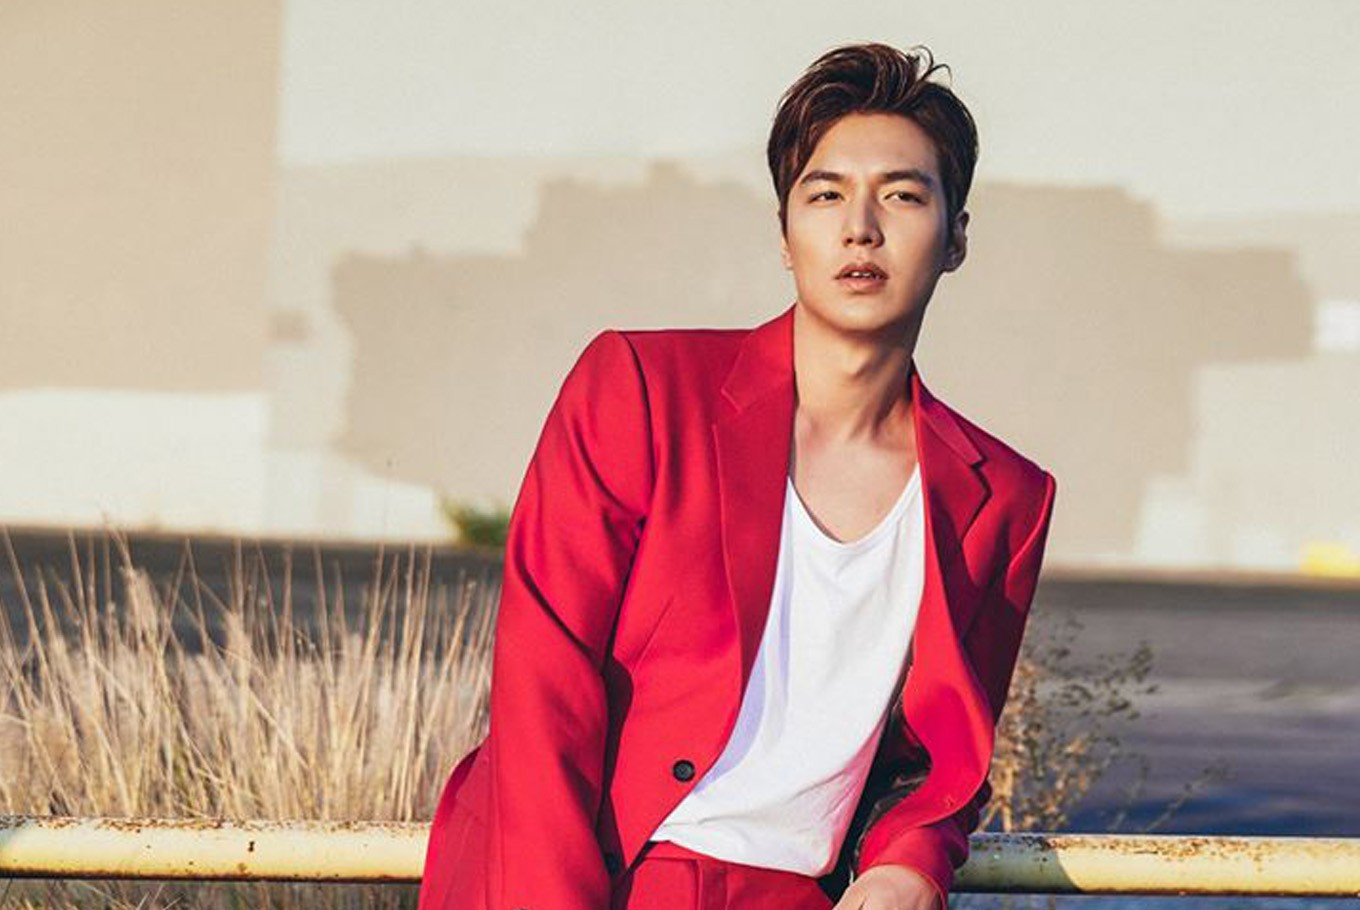 e22604e6 Lee Min-ho to join military this year - Entertainment - The Jakarta Post